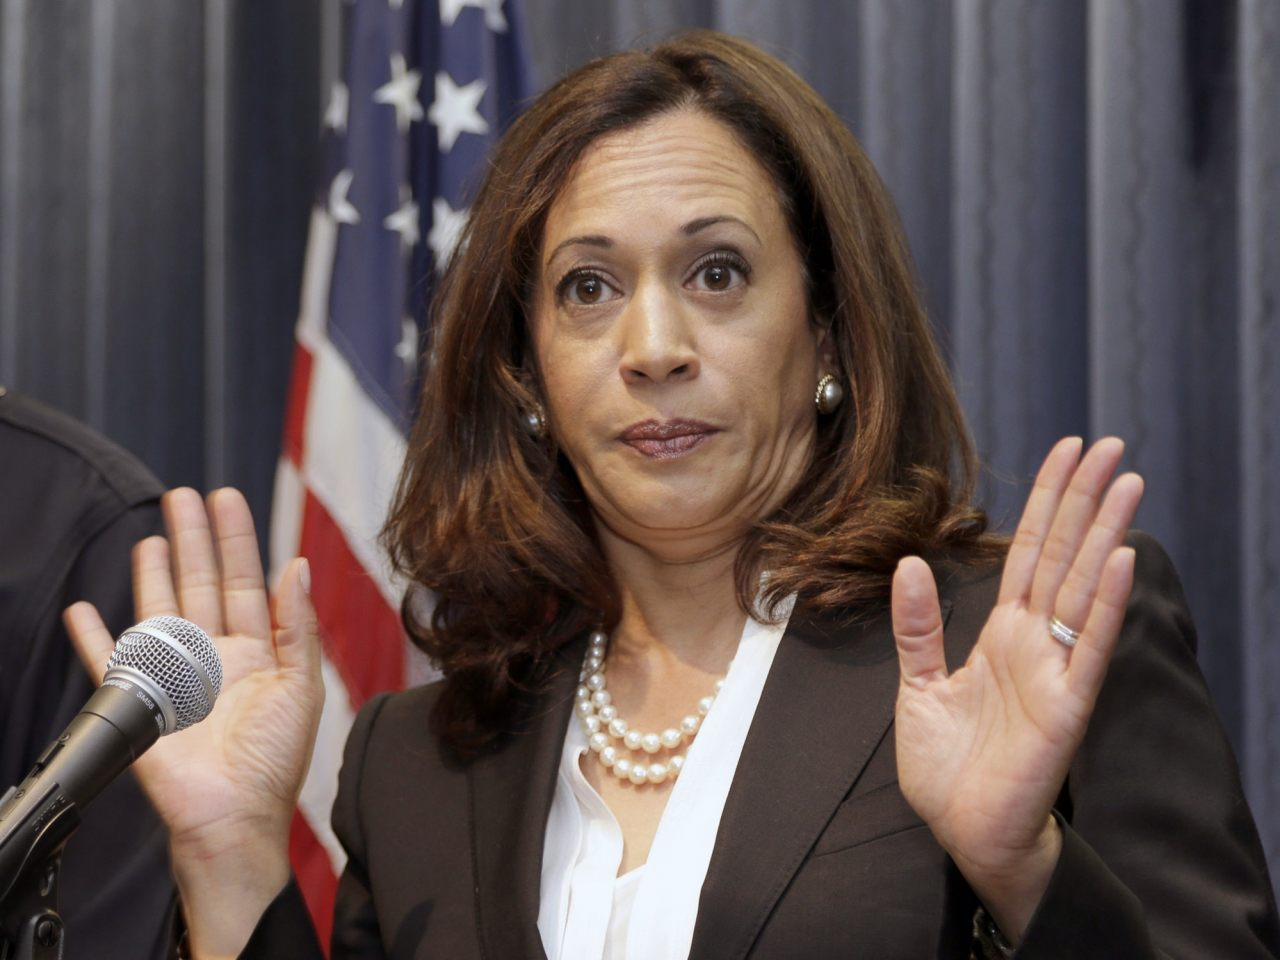 Image: Democratic VP candidate Kamala Harris kept hundreds of men in prison for cheap labor – pictures make up her mosaic